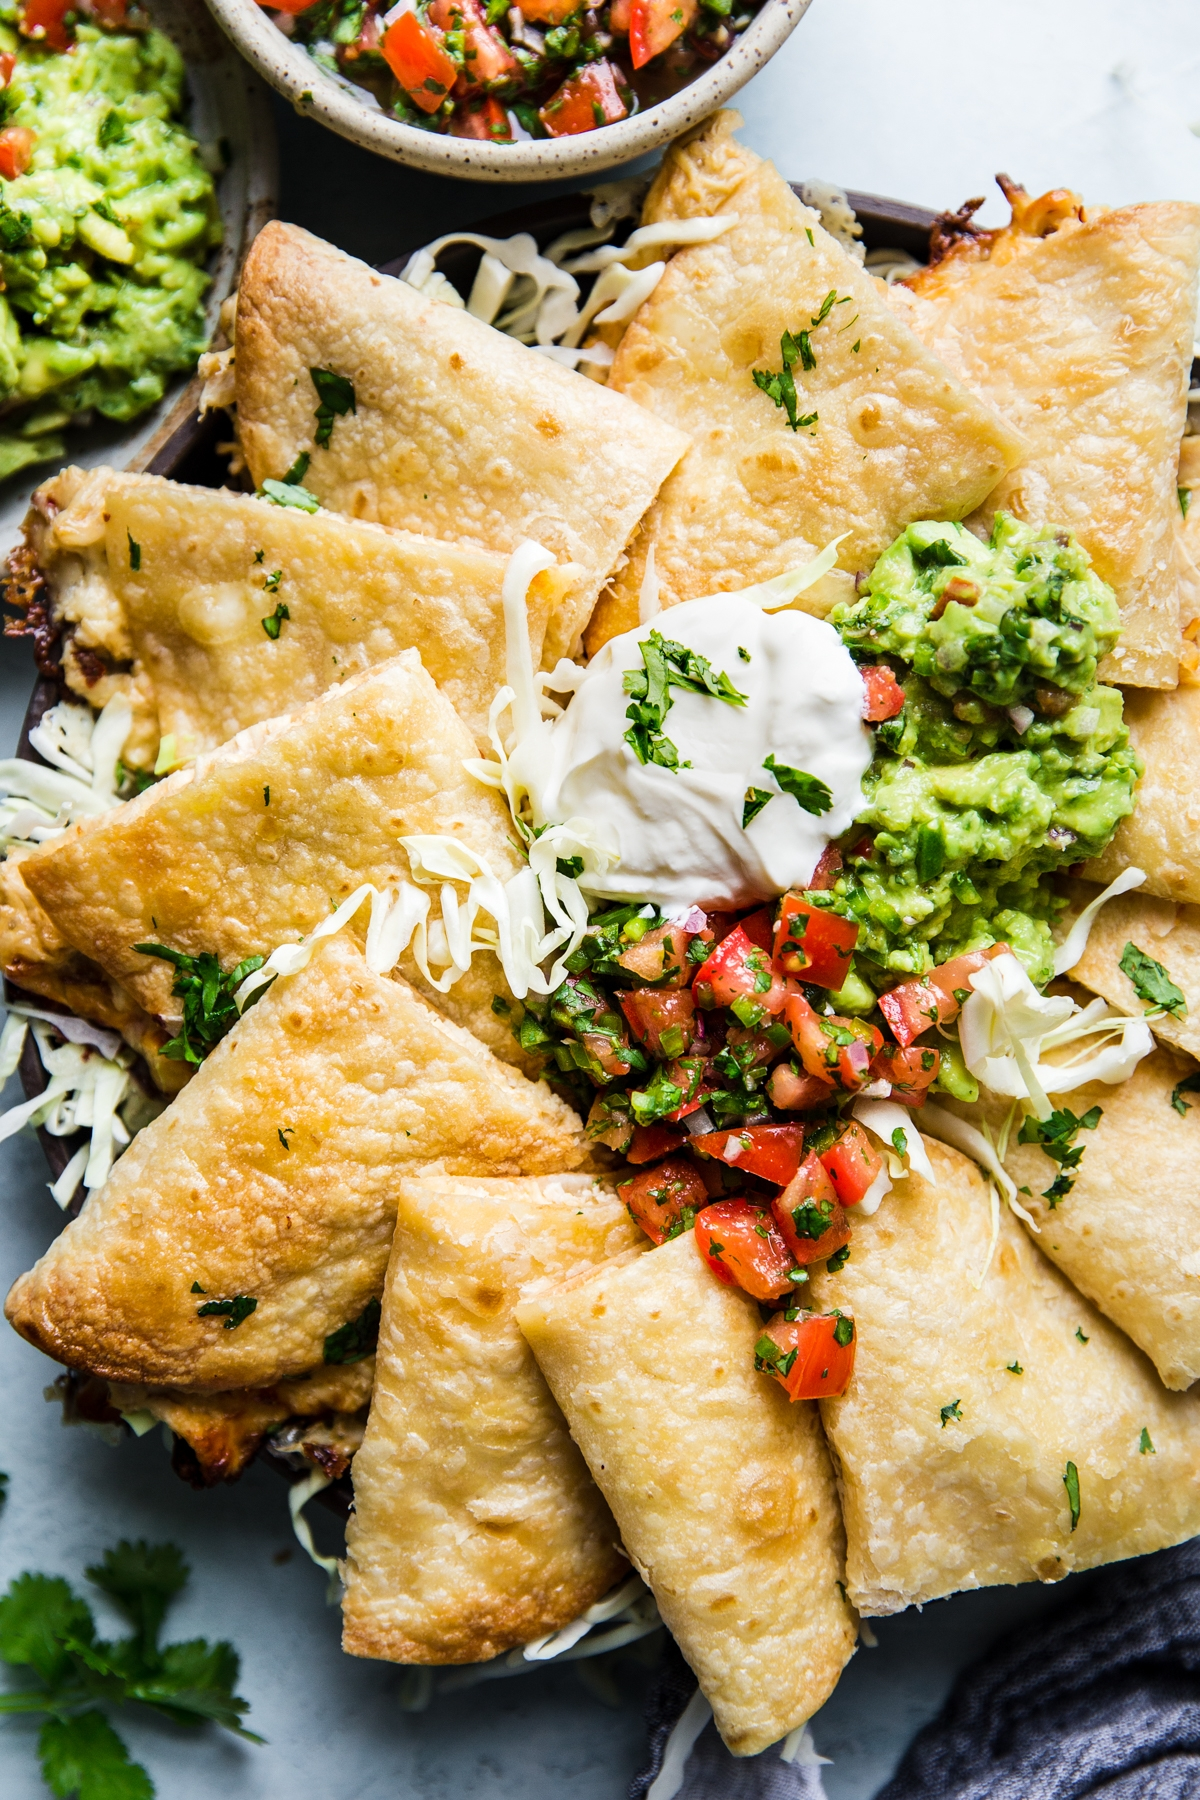 Easy Baked Chicken Quesadilla Recipe images